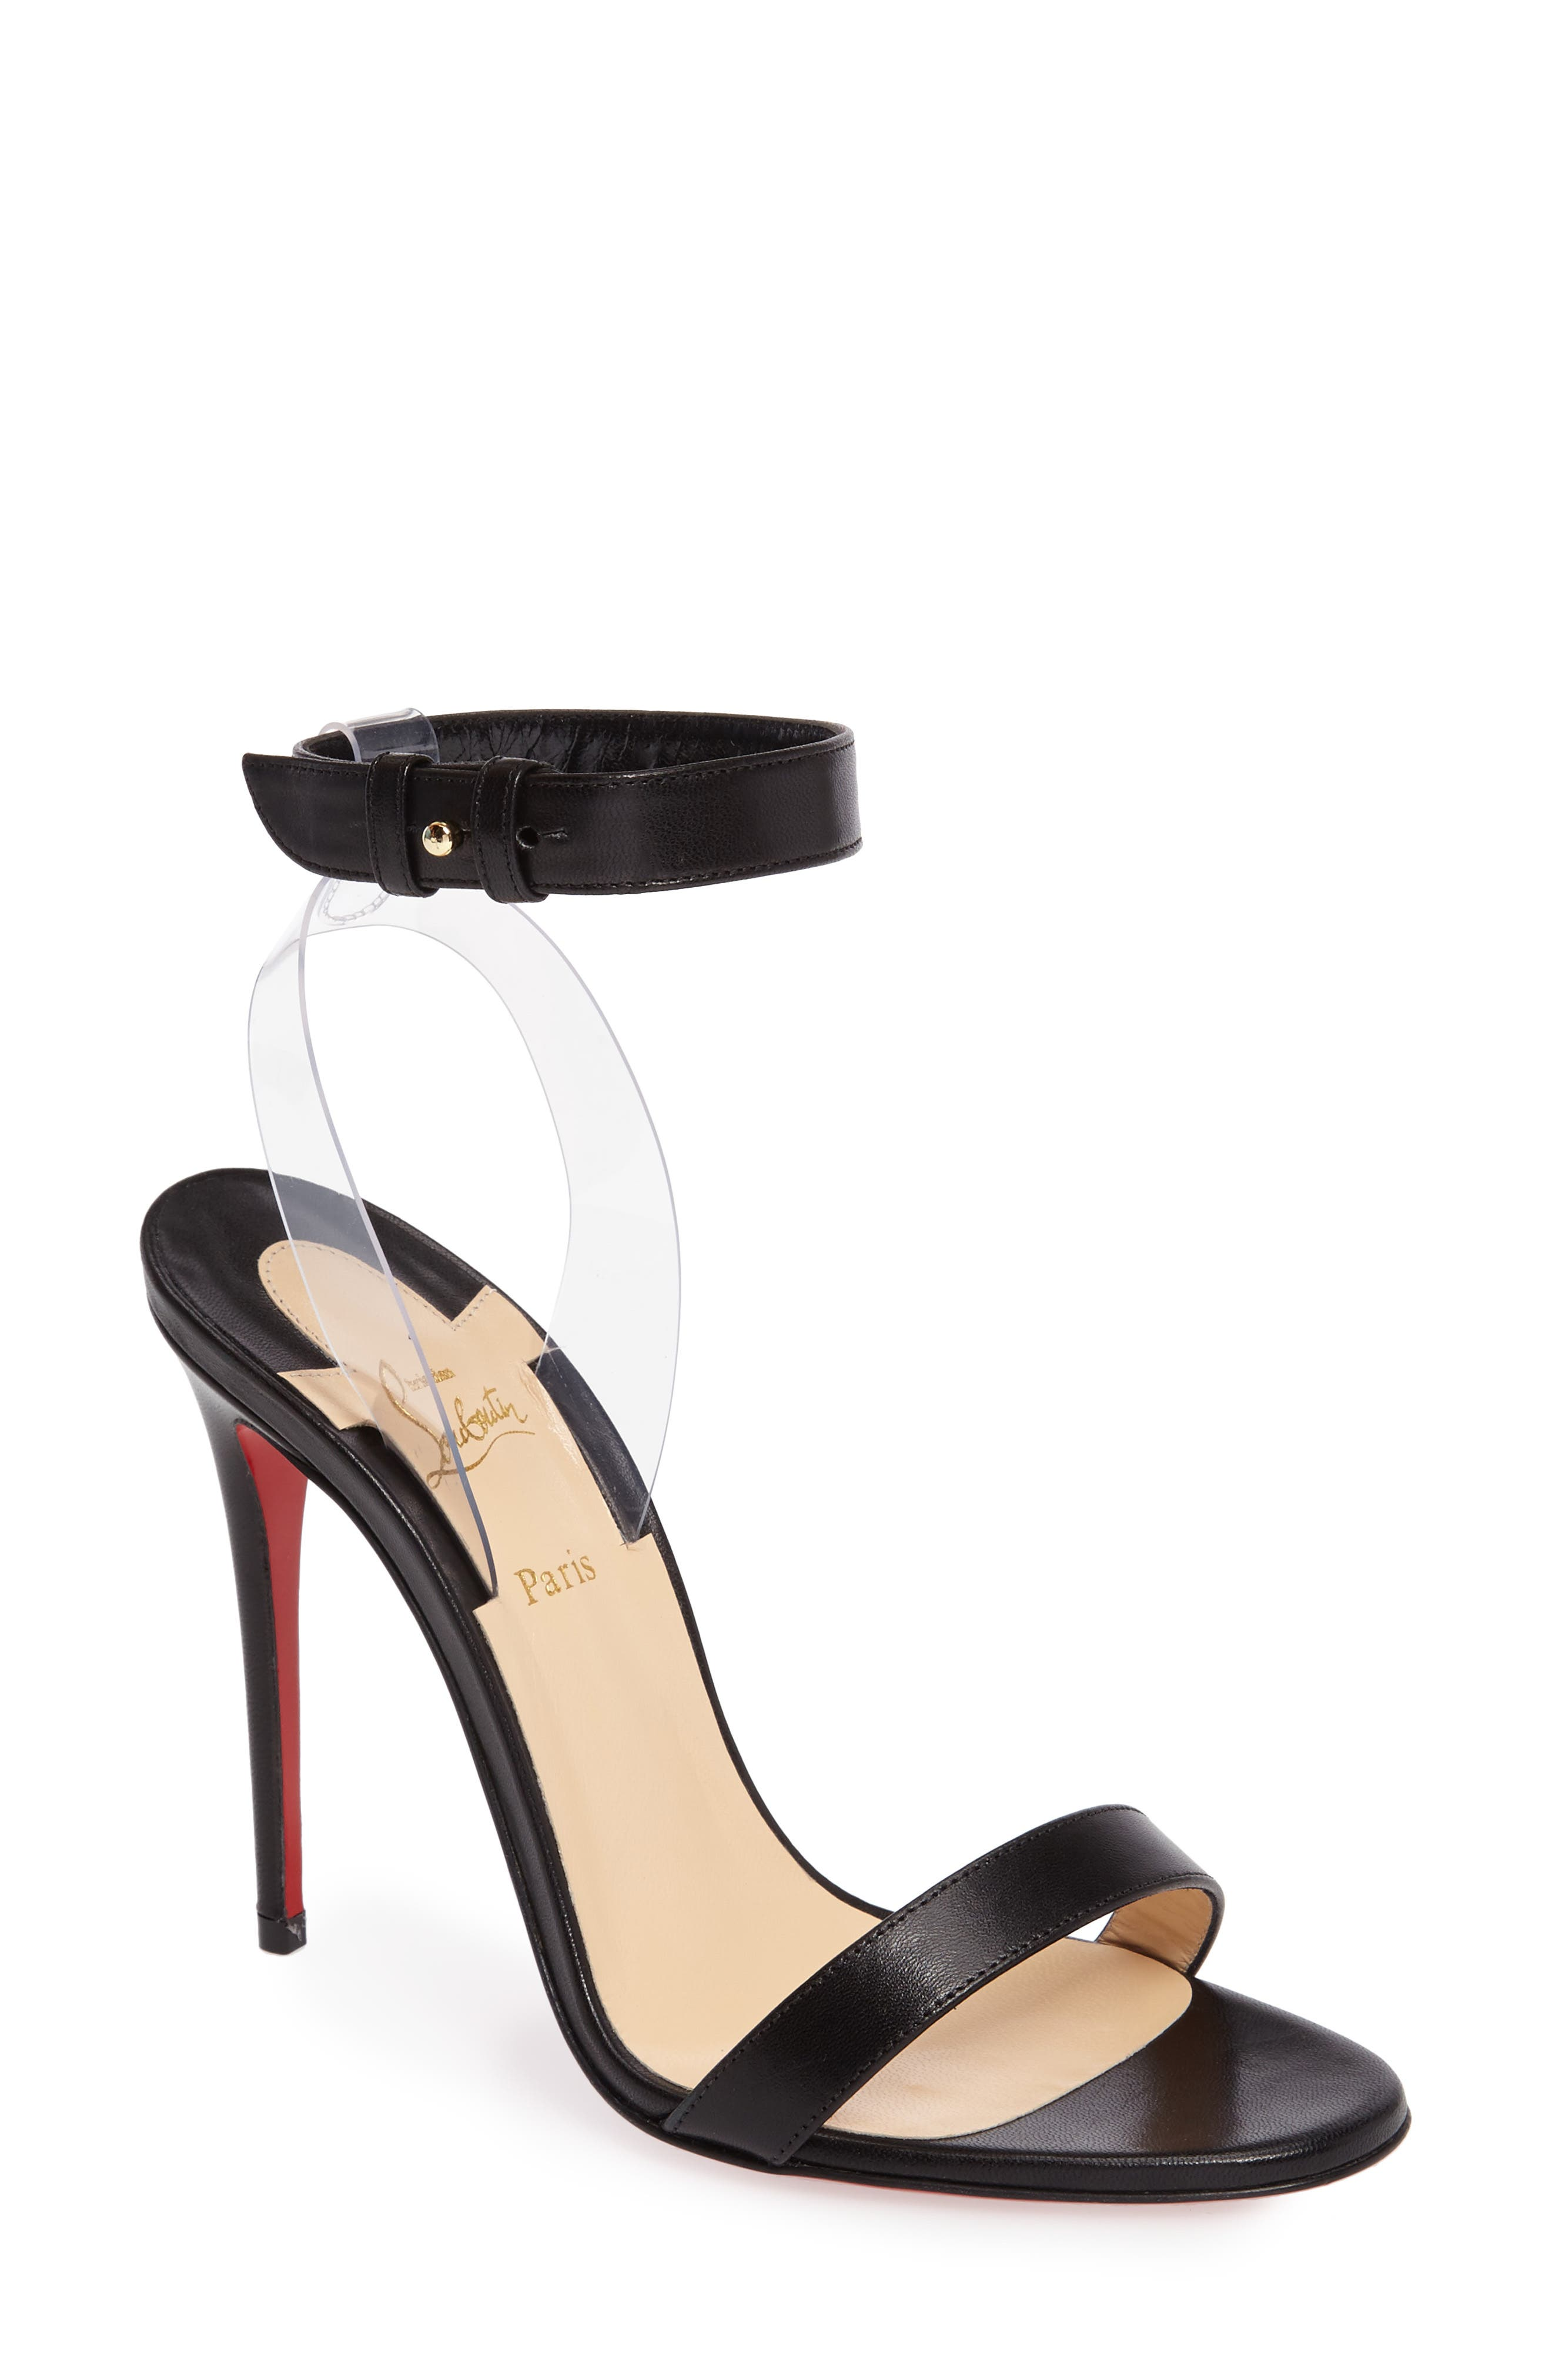 73714bb6c6d Women's Christian Louboutin Wedding Shoes | Nordstrom